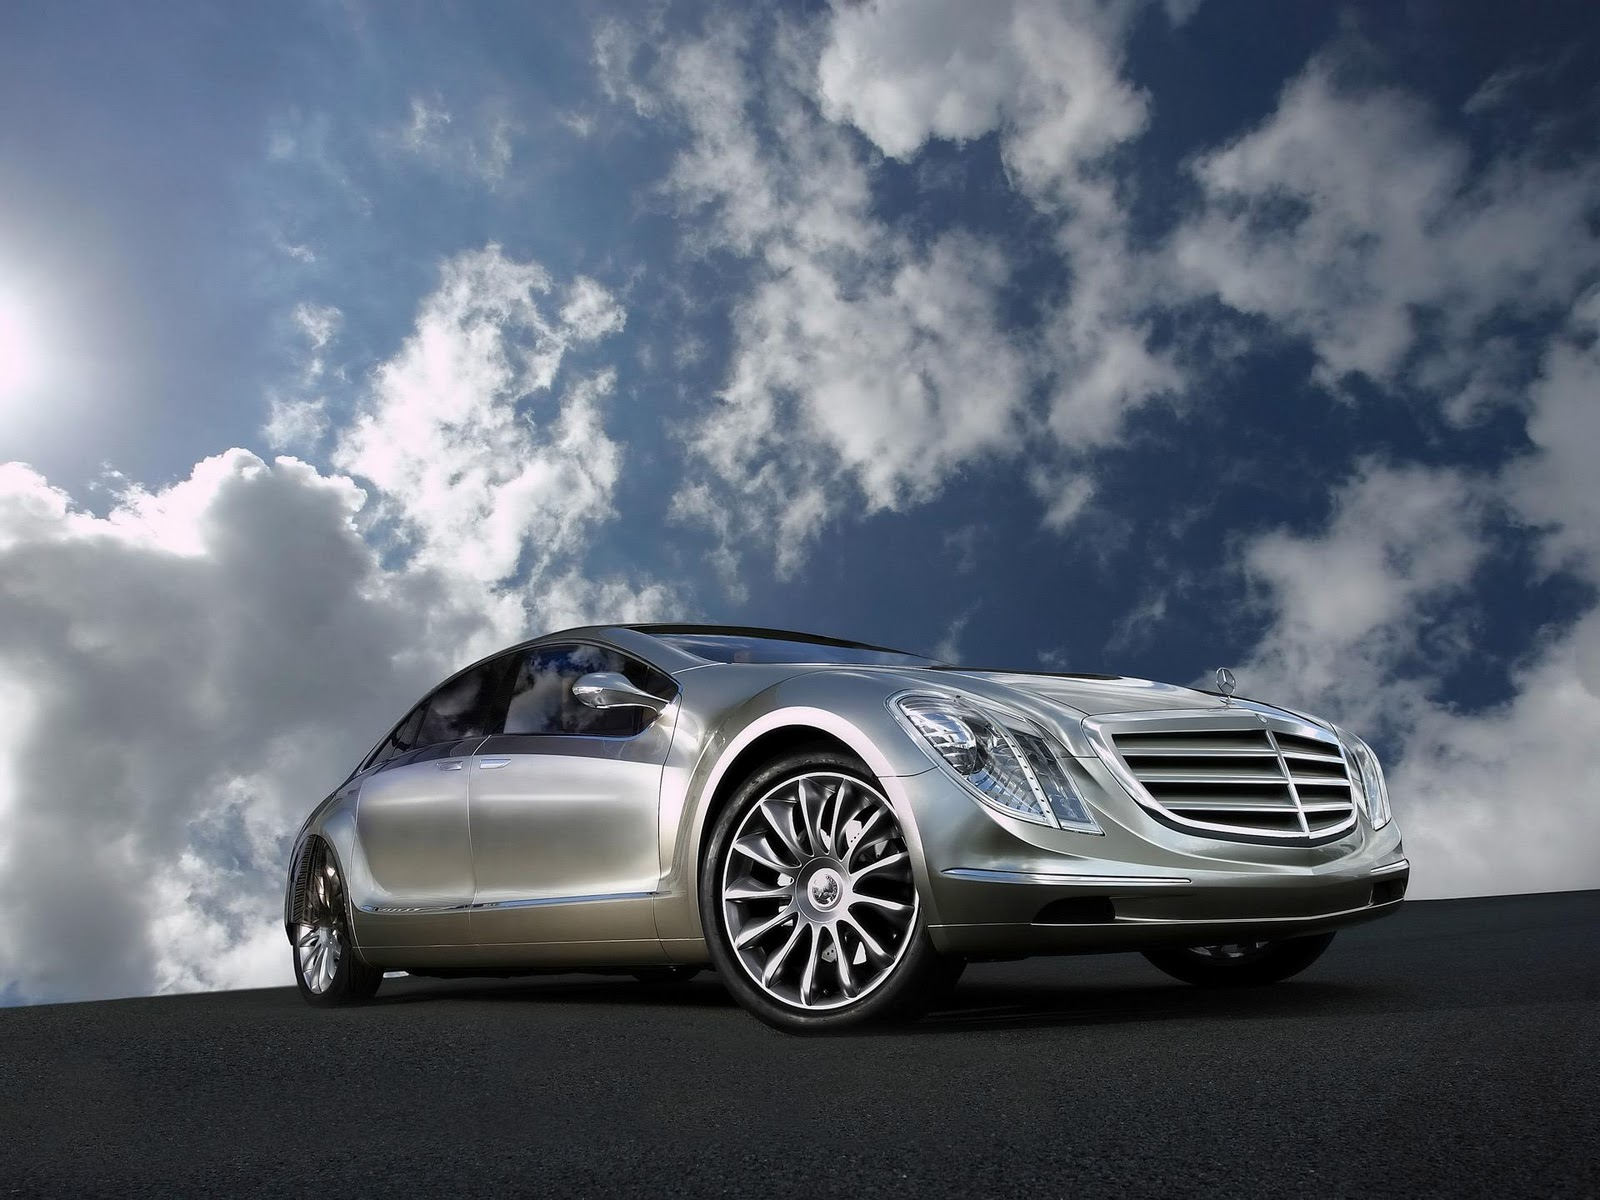 Mercedes benz wallpaper desktop cars n bikes for Mercedes benz cars pictures